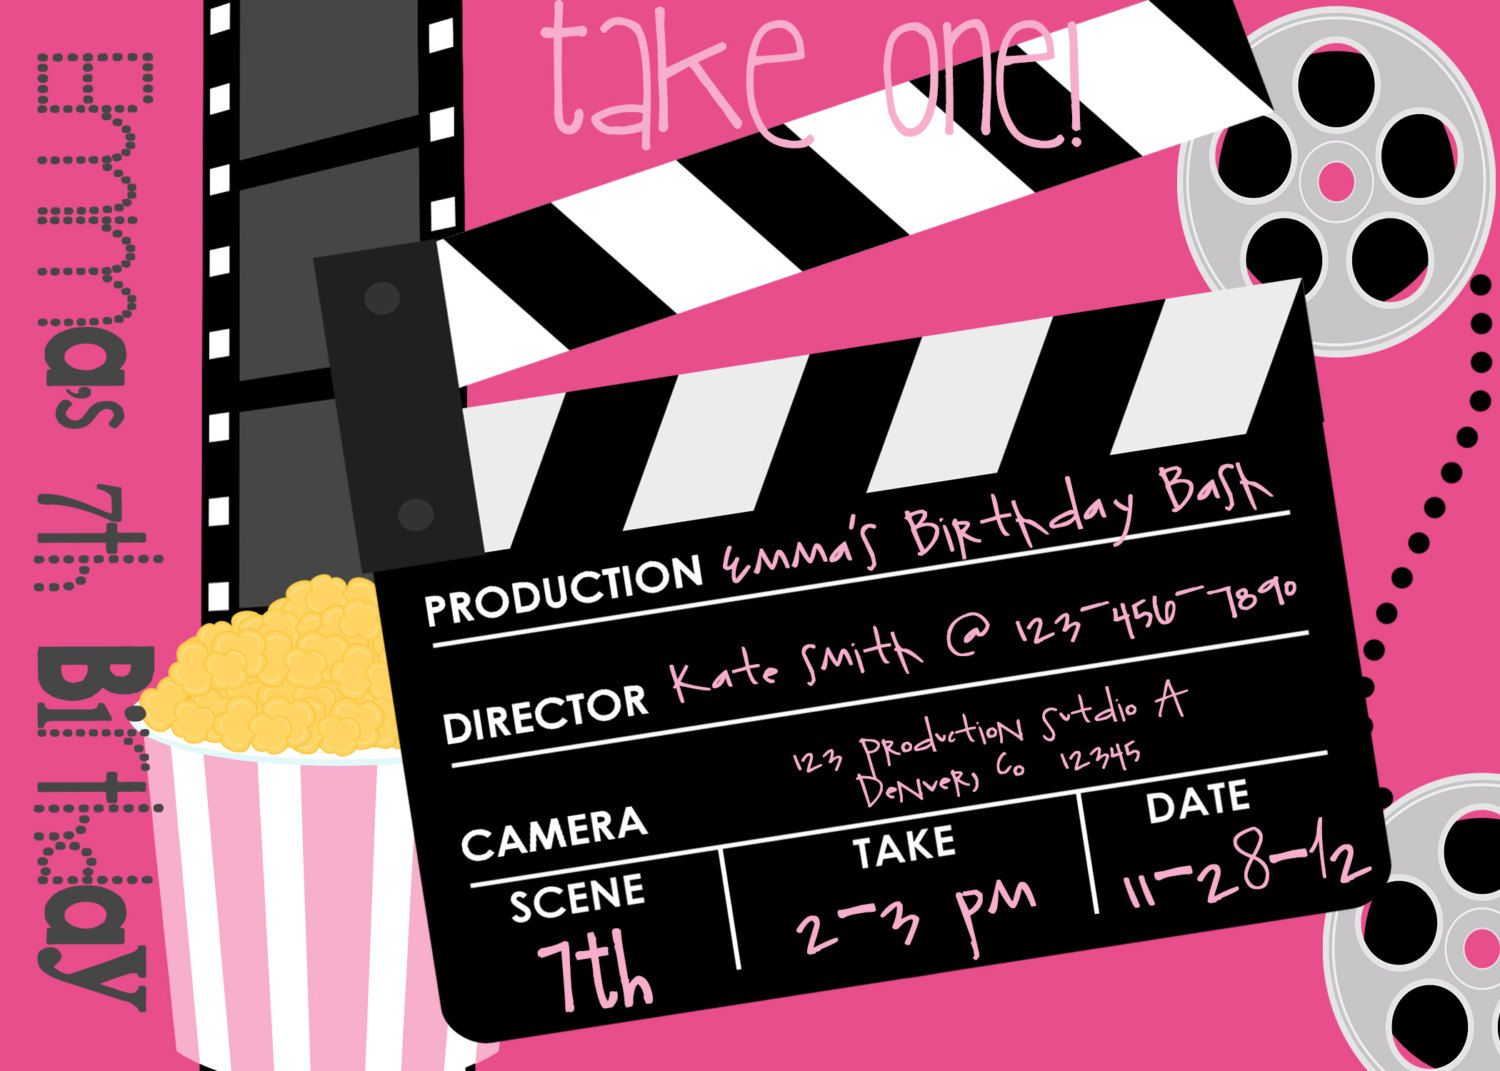 printable movie birthday party invitation this is a listing for a printable dpi digital file product jpeg pdf can be printed on - Movie Birthday Party Invitations